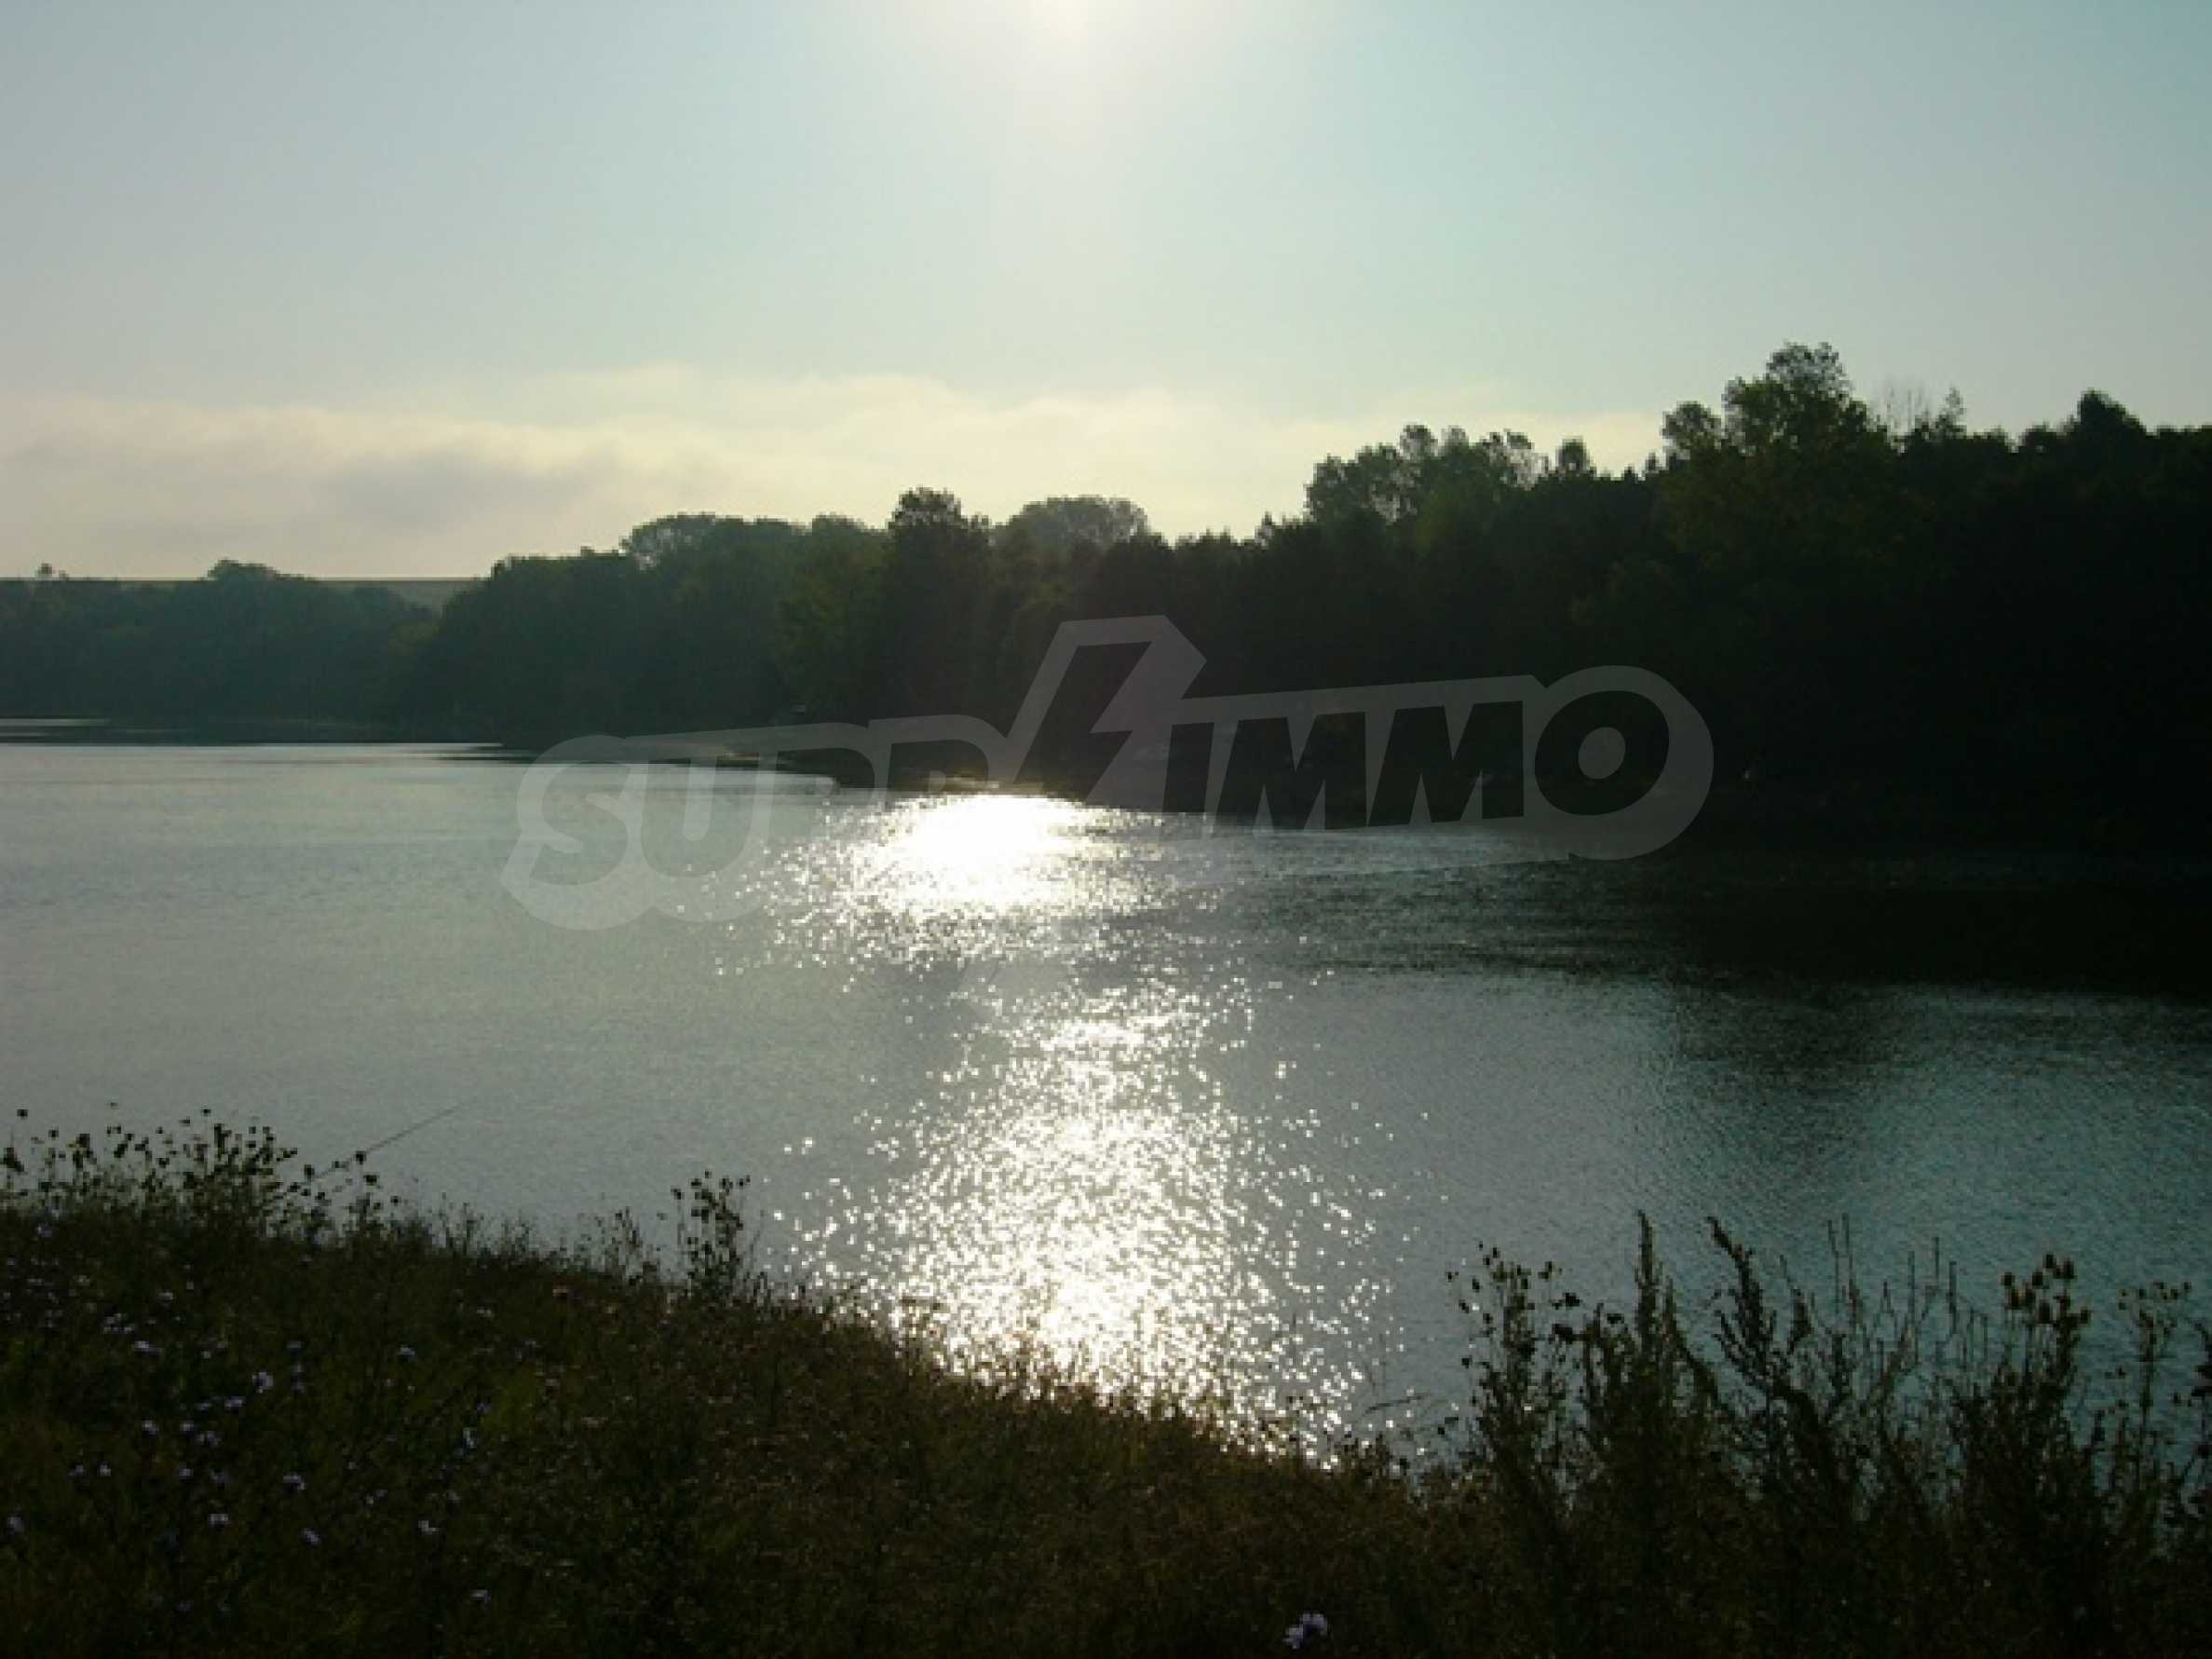 An extremely hot offer for regulated plots for sale by a beautiful lake 16 miles away from the sea 20